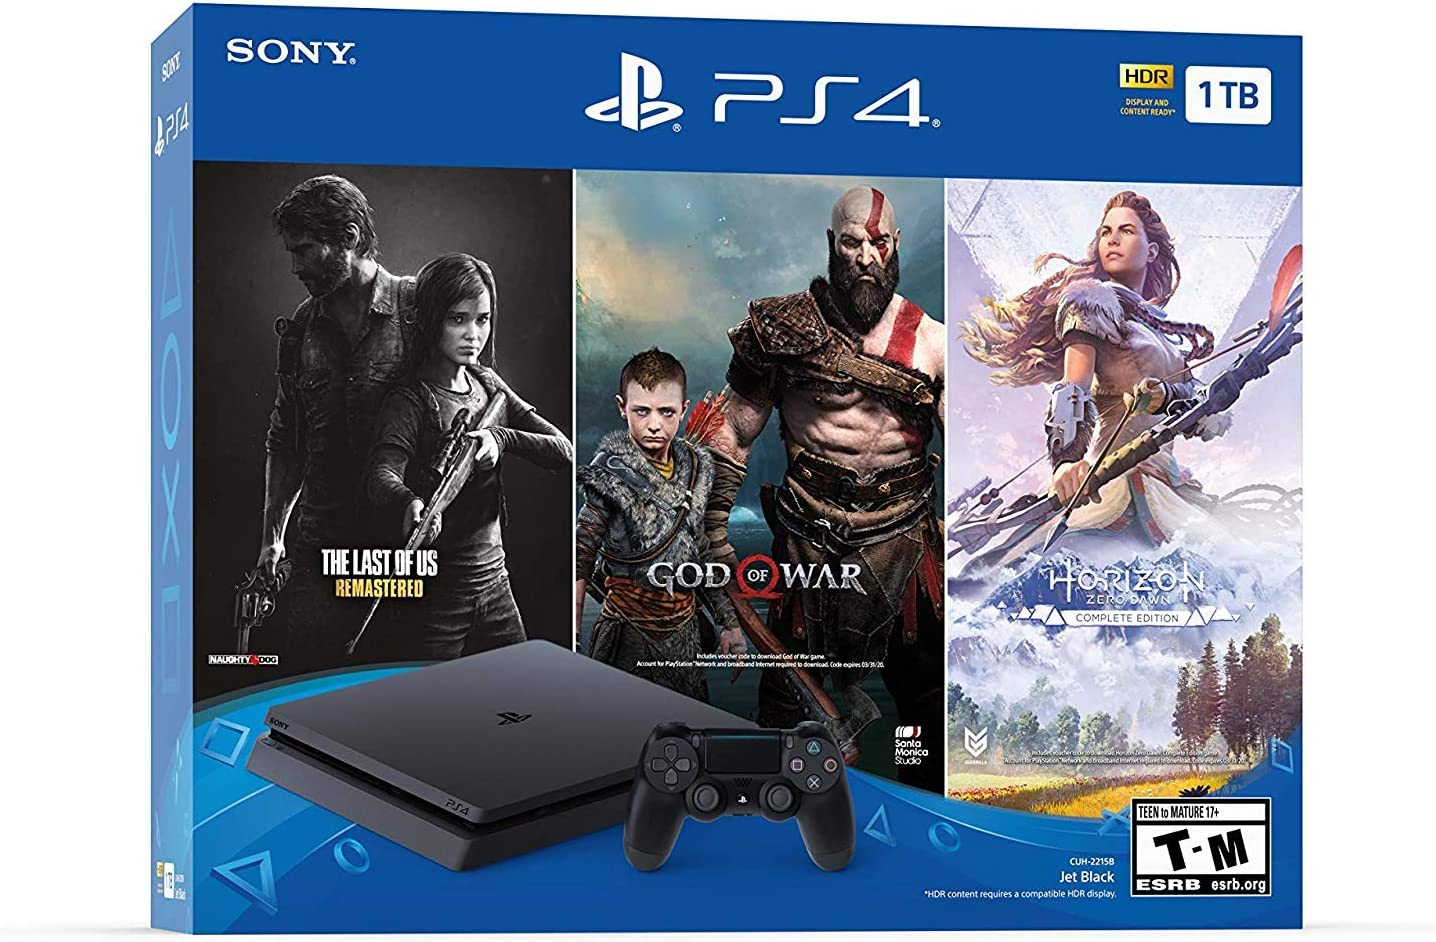 Amazon Com Newest Flagship Sony Play Station 4 1tb Hdd Only On Playstation Ps4 Console Slim Bundle Included 3x Games The Last Of Us God Of War Horizon Zero Dawn 1tb Hard